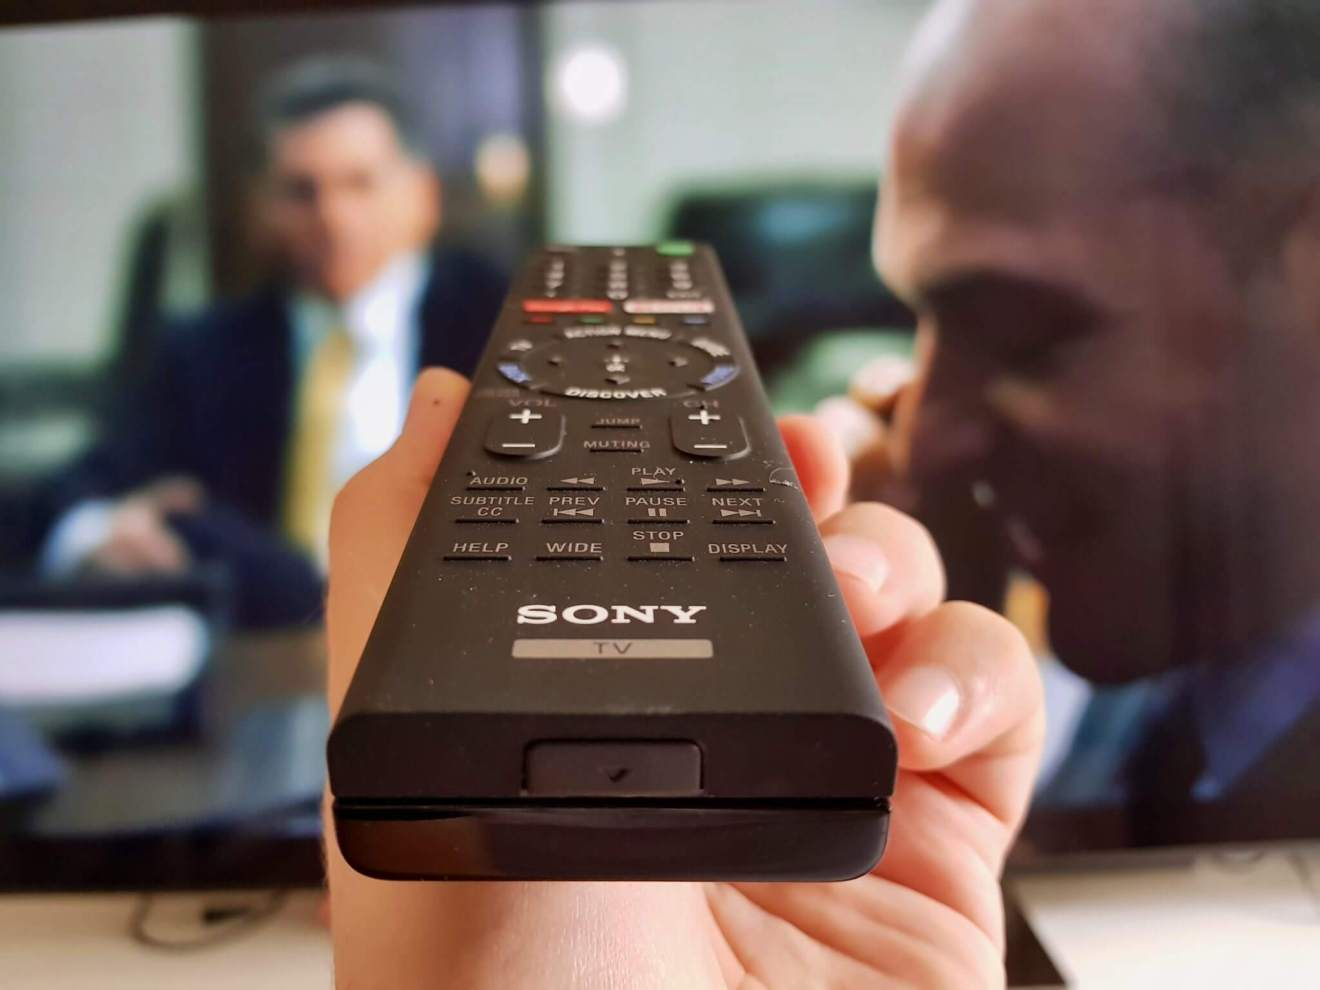 20171020 122344 - Review: Smart TV Sony 4K XBR-65X905E (Android TV)